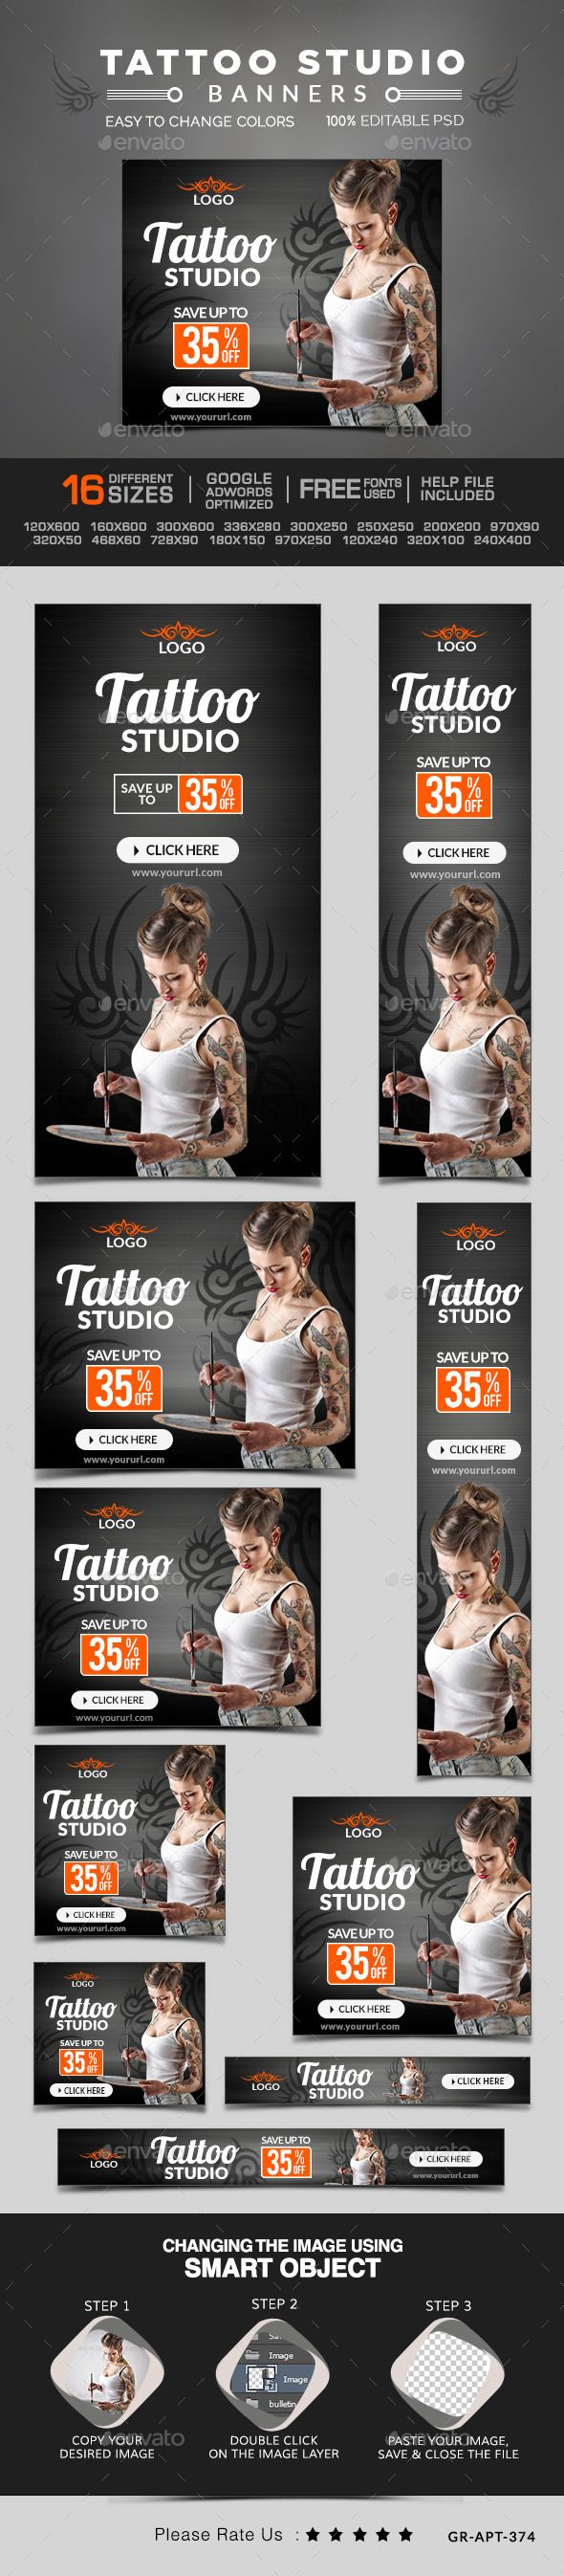 Tatto Studio Banners Template PSD | #webbanner #tattobanners #bannertemplate | Download: http://graphicriver.net/item/tatto-studio-banners/10391501?ref=ksioks